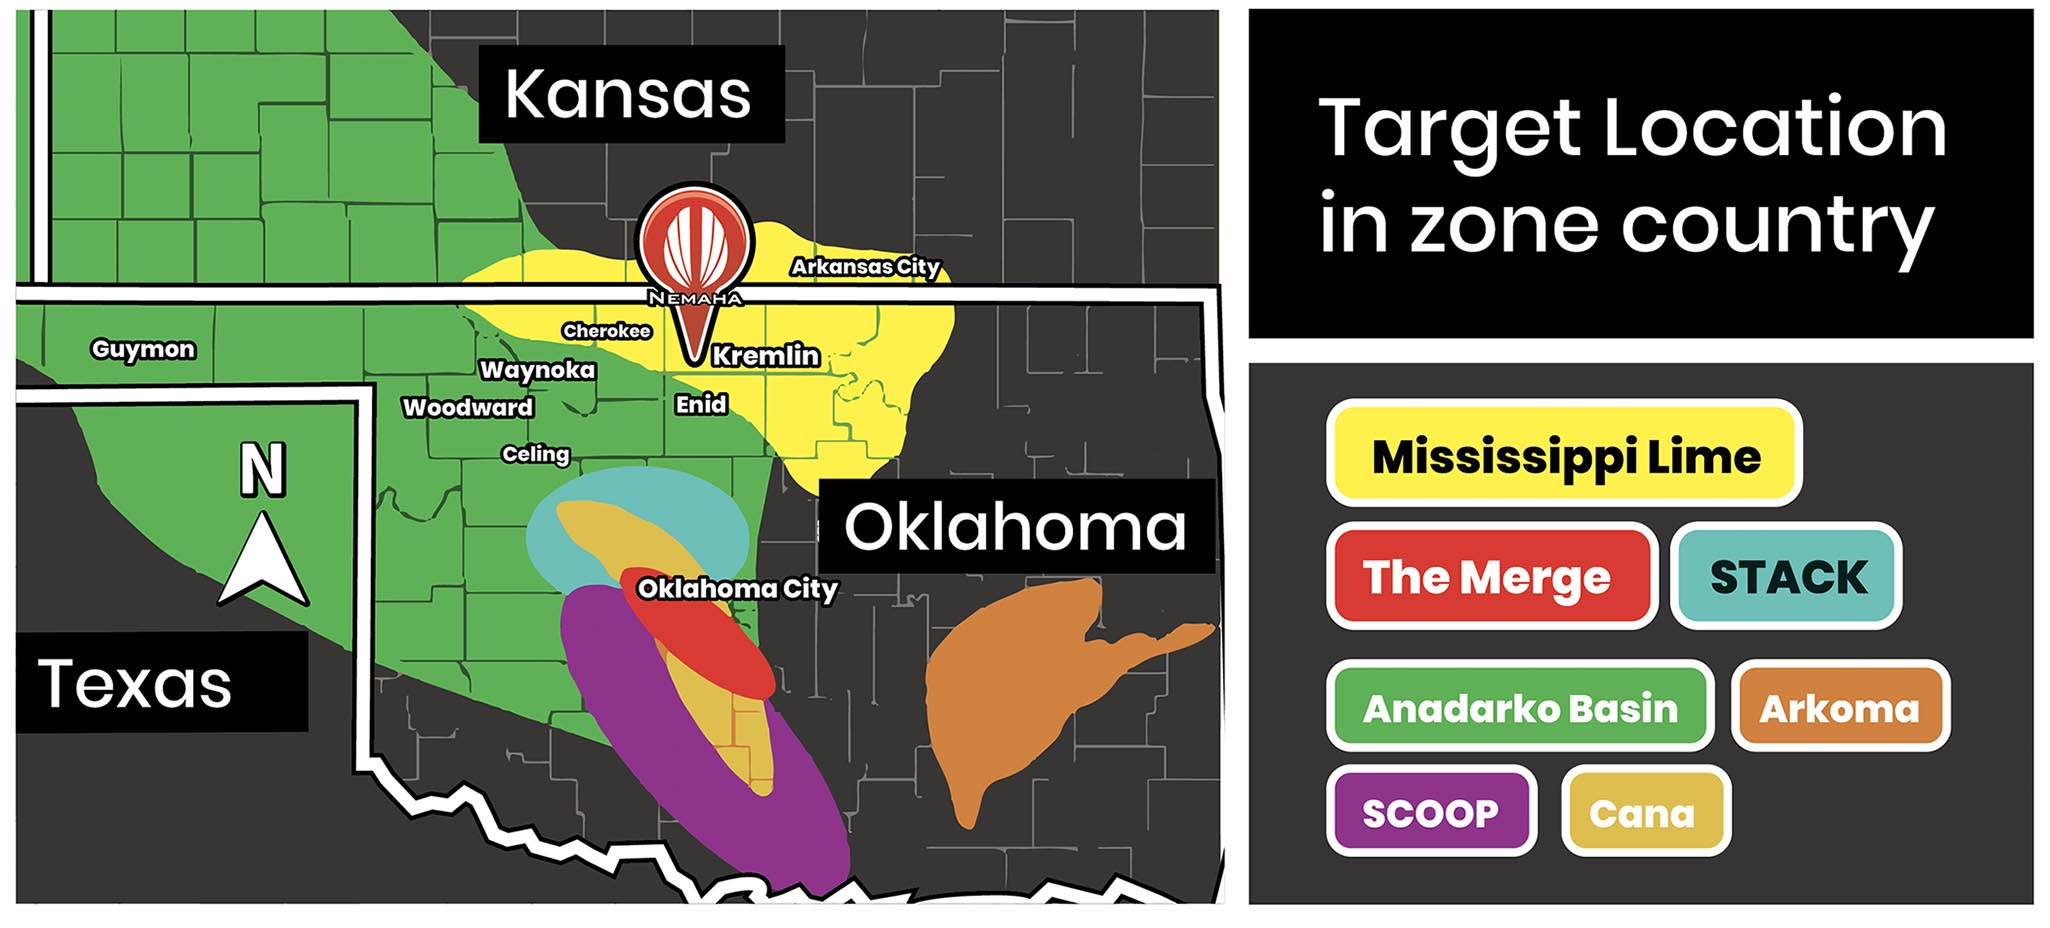 Oklahoma Map - ZONES